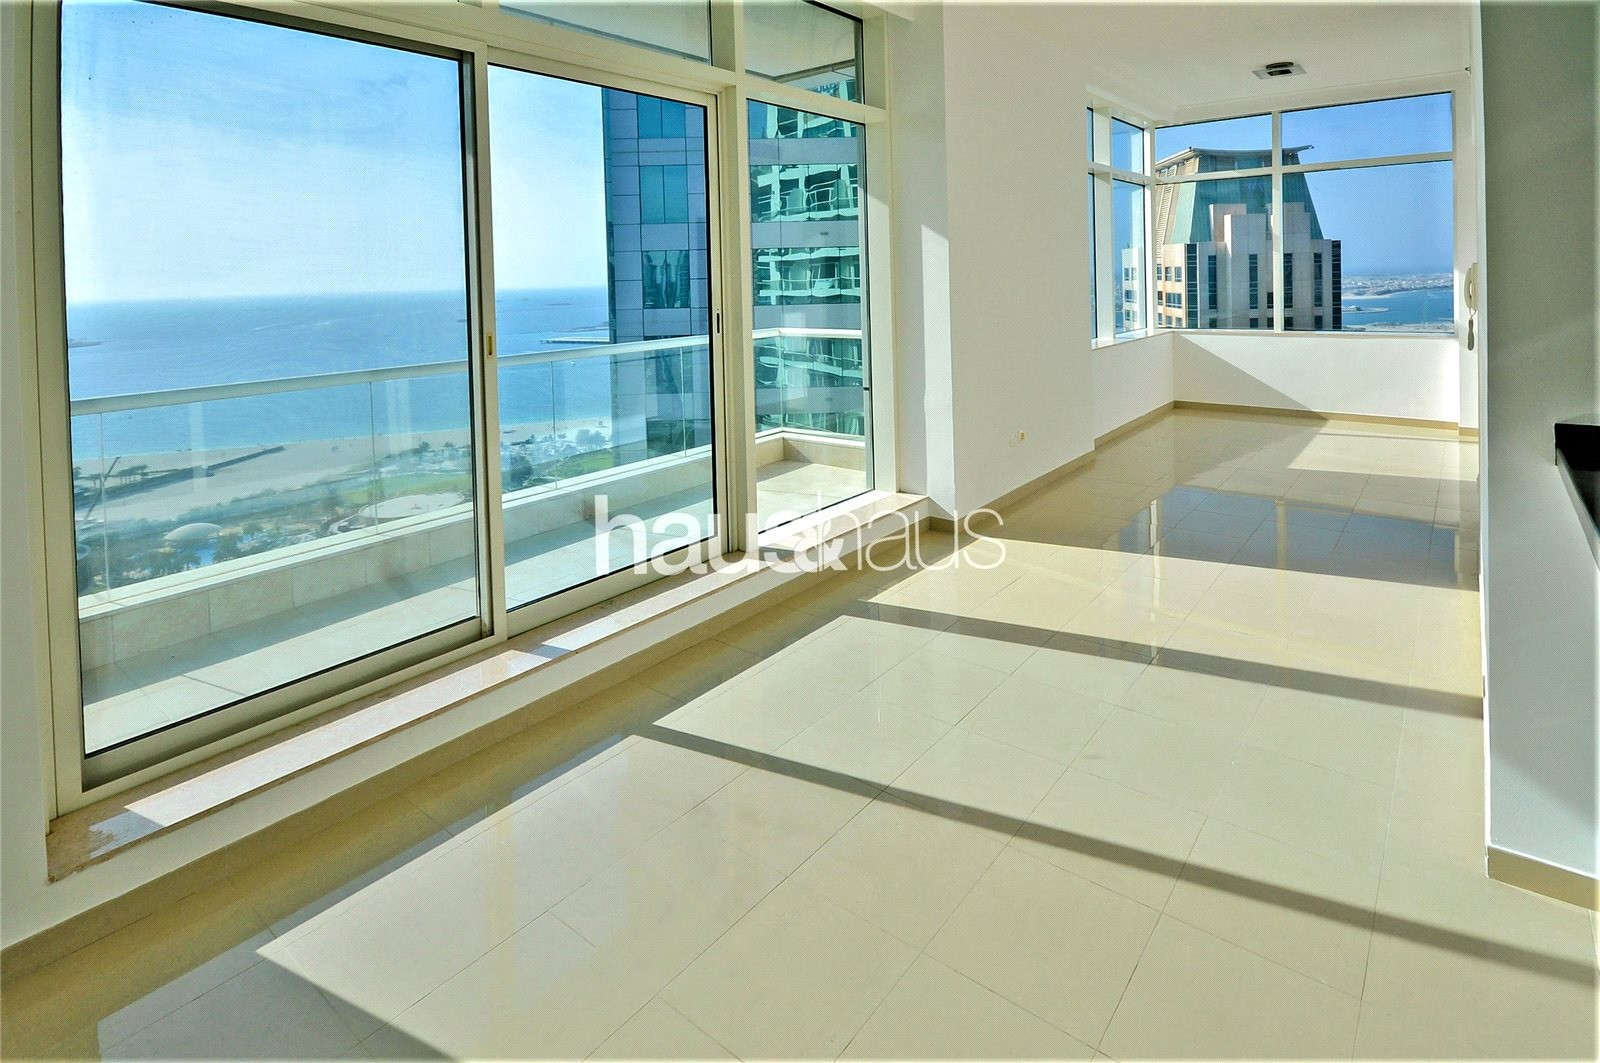 1 - 6 Cheques | Sea View | Priced to rent